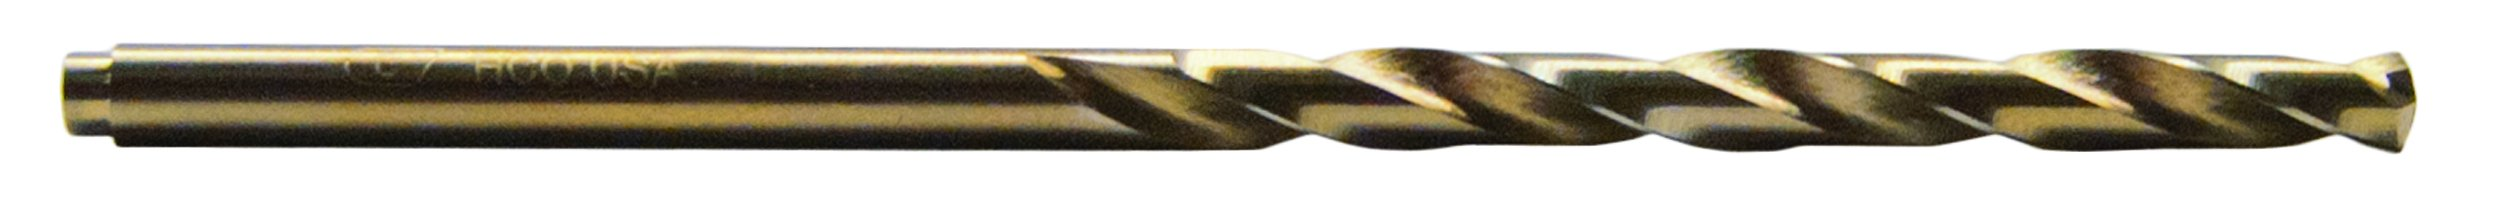 Century Drill and Tool 26207 Cobalt High Speed Steel Drill Bit, 7/64-Inch, 2 Pack